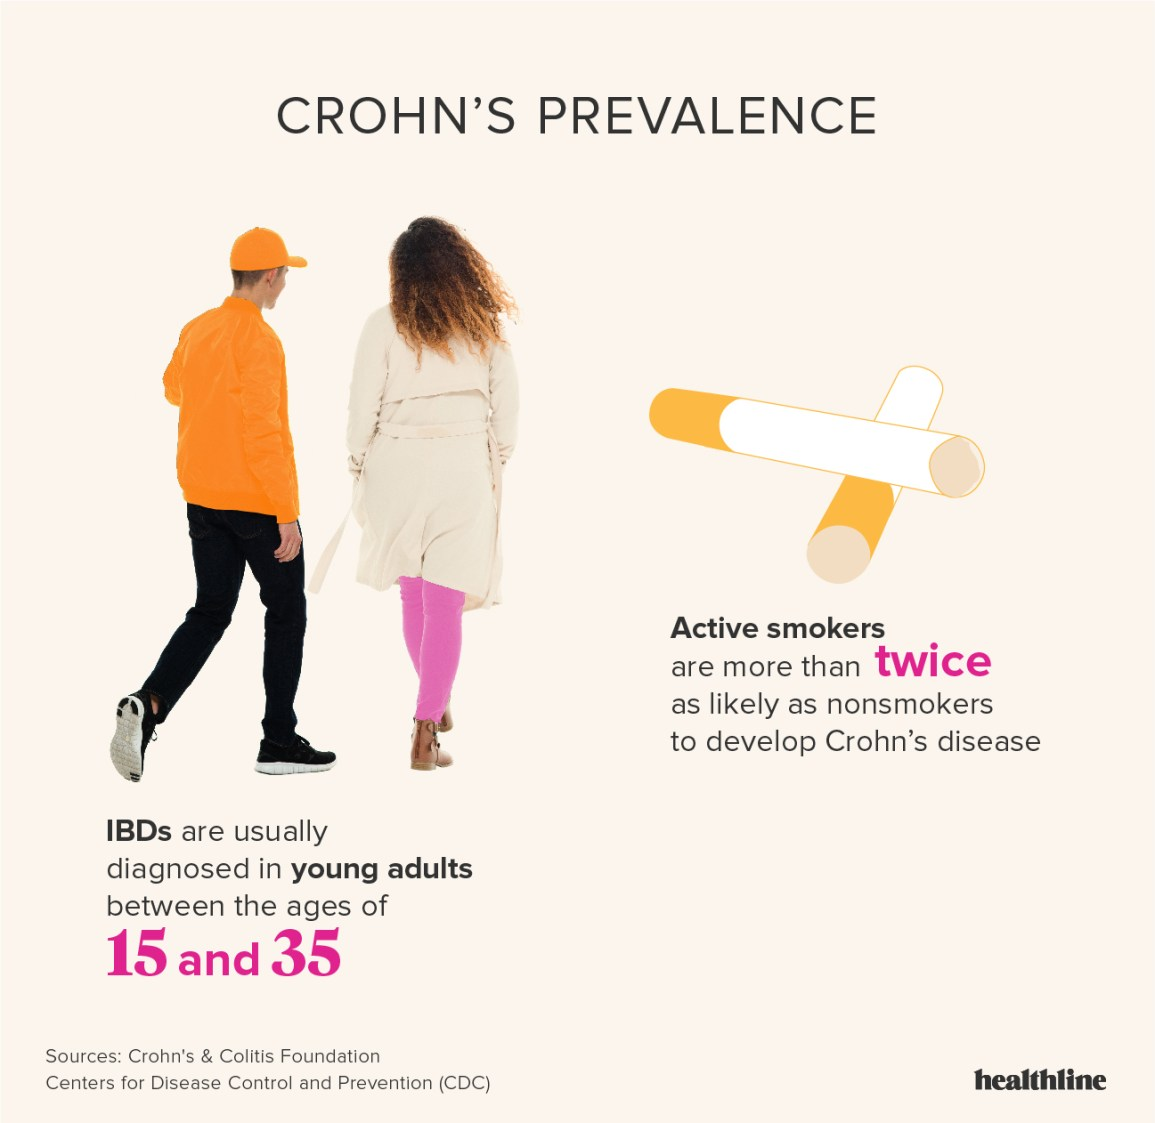 Crohn's Disease: Facts, Statistics, and You